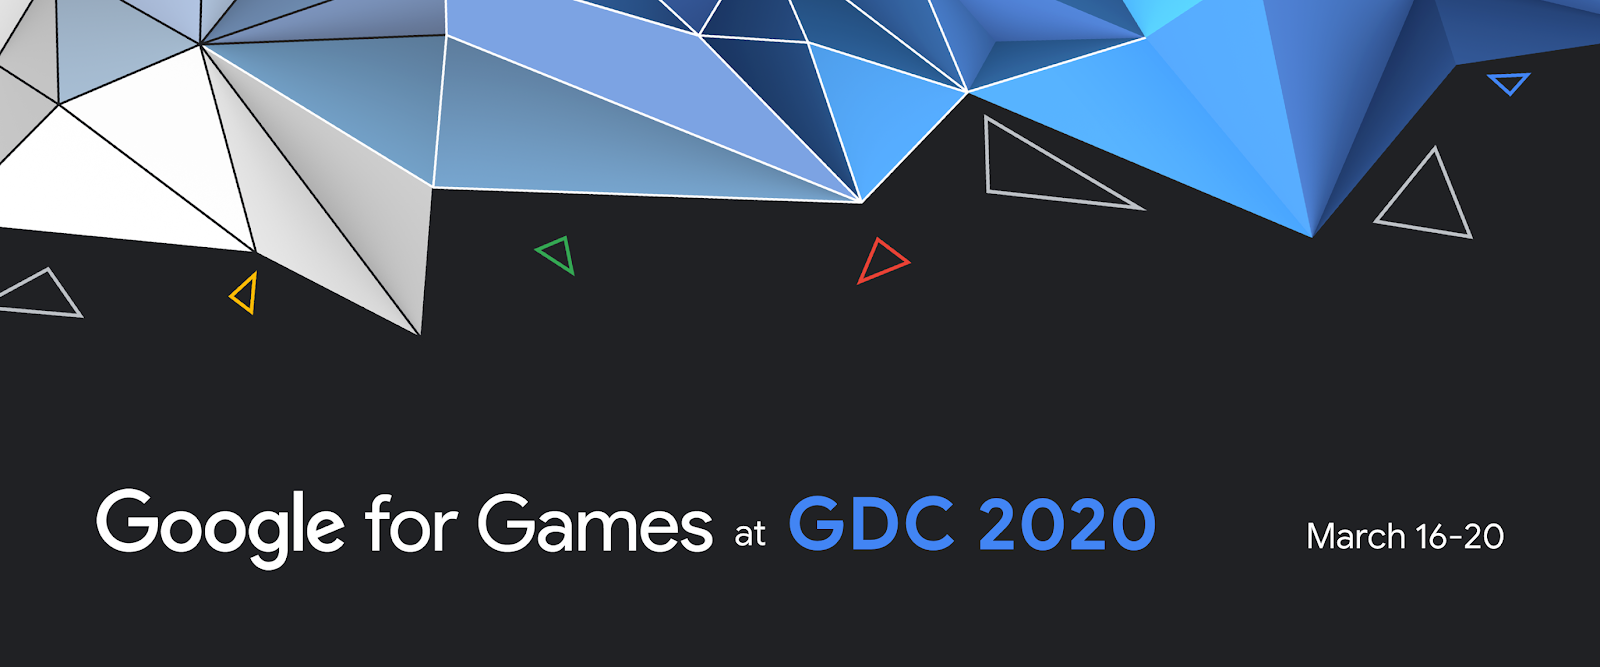 Google For Games at GDC March 16-20, 2020